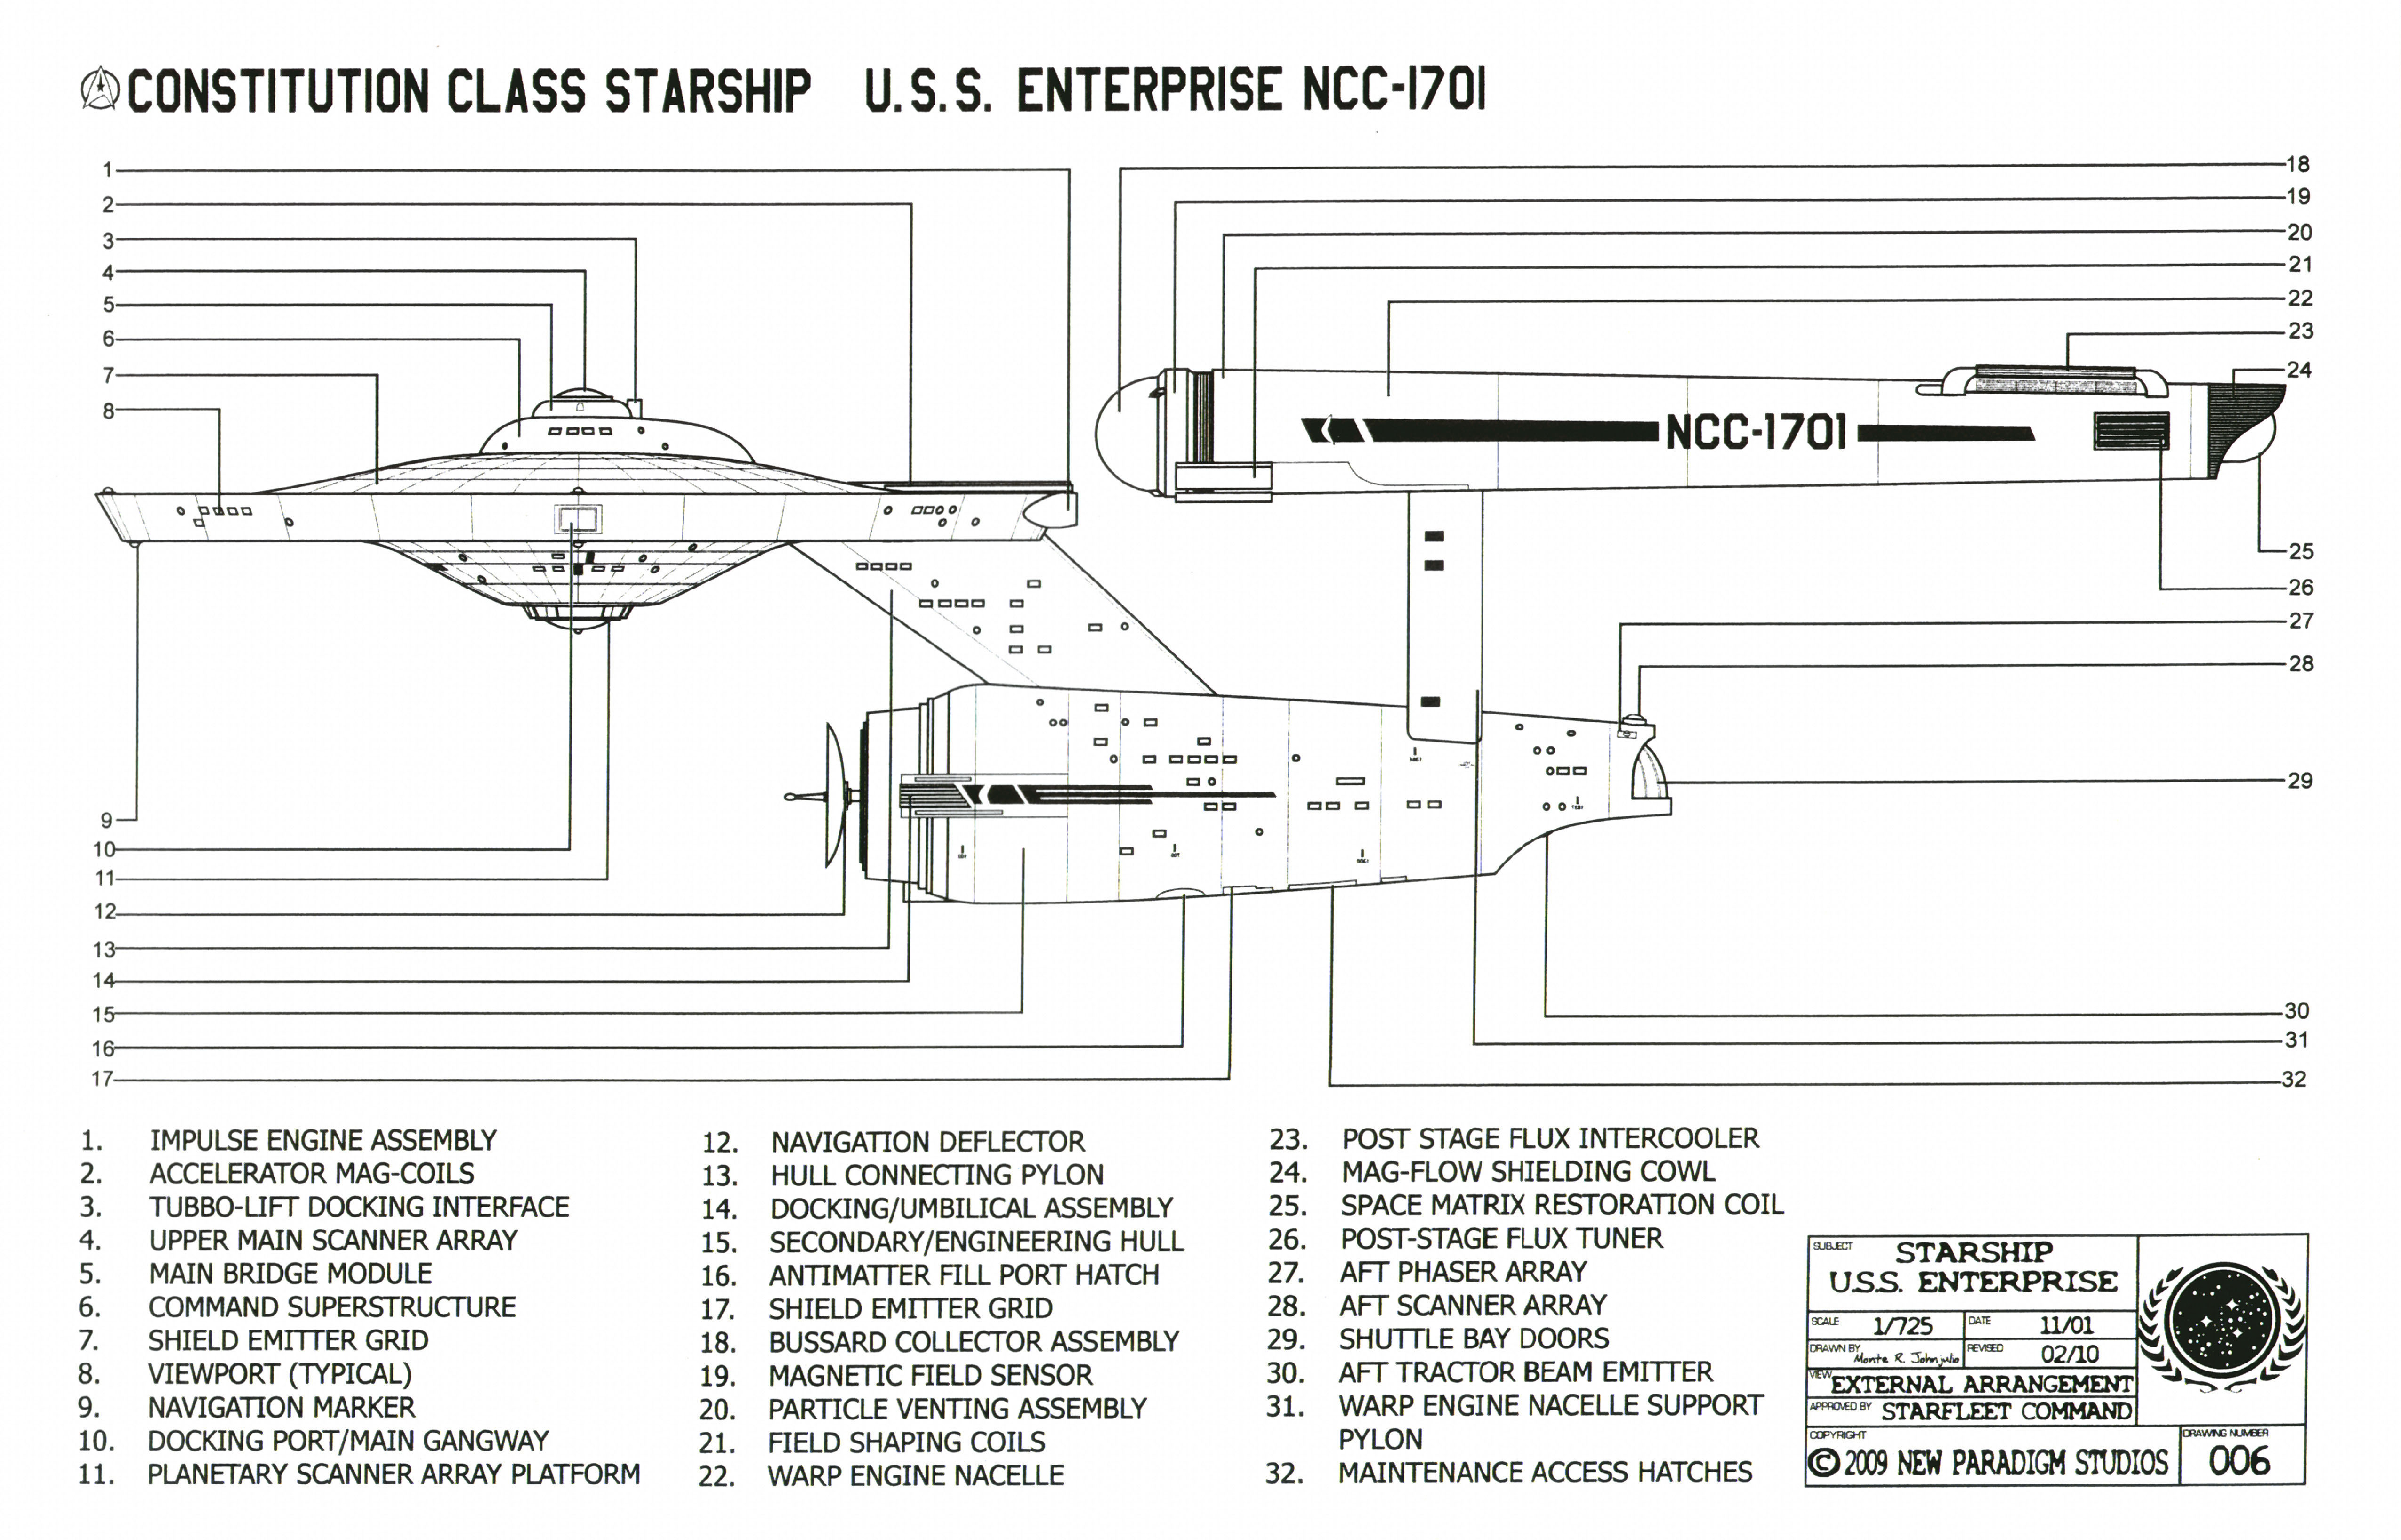 Galactica Schematics on death star schematics, bsg 75 schematics, starship deck plans and schematics, andromeda ascendant schematics, electrostatic levitation schematics, colonial viper schematics, star wars schematics, babylon 5 schematics, battlestar pegasus schematics, spaceship schematics,